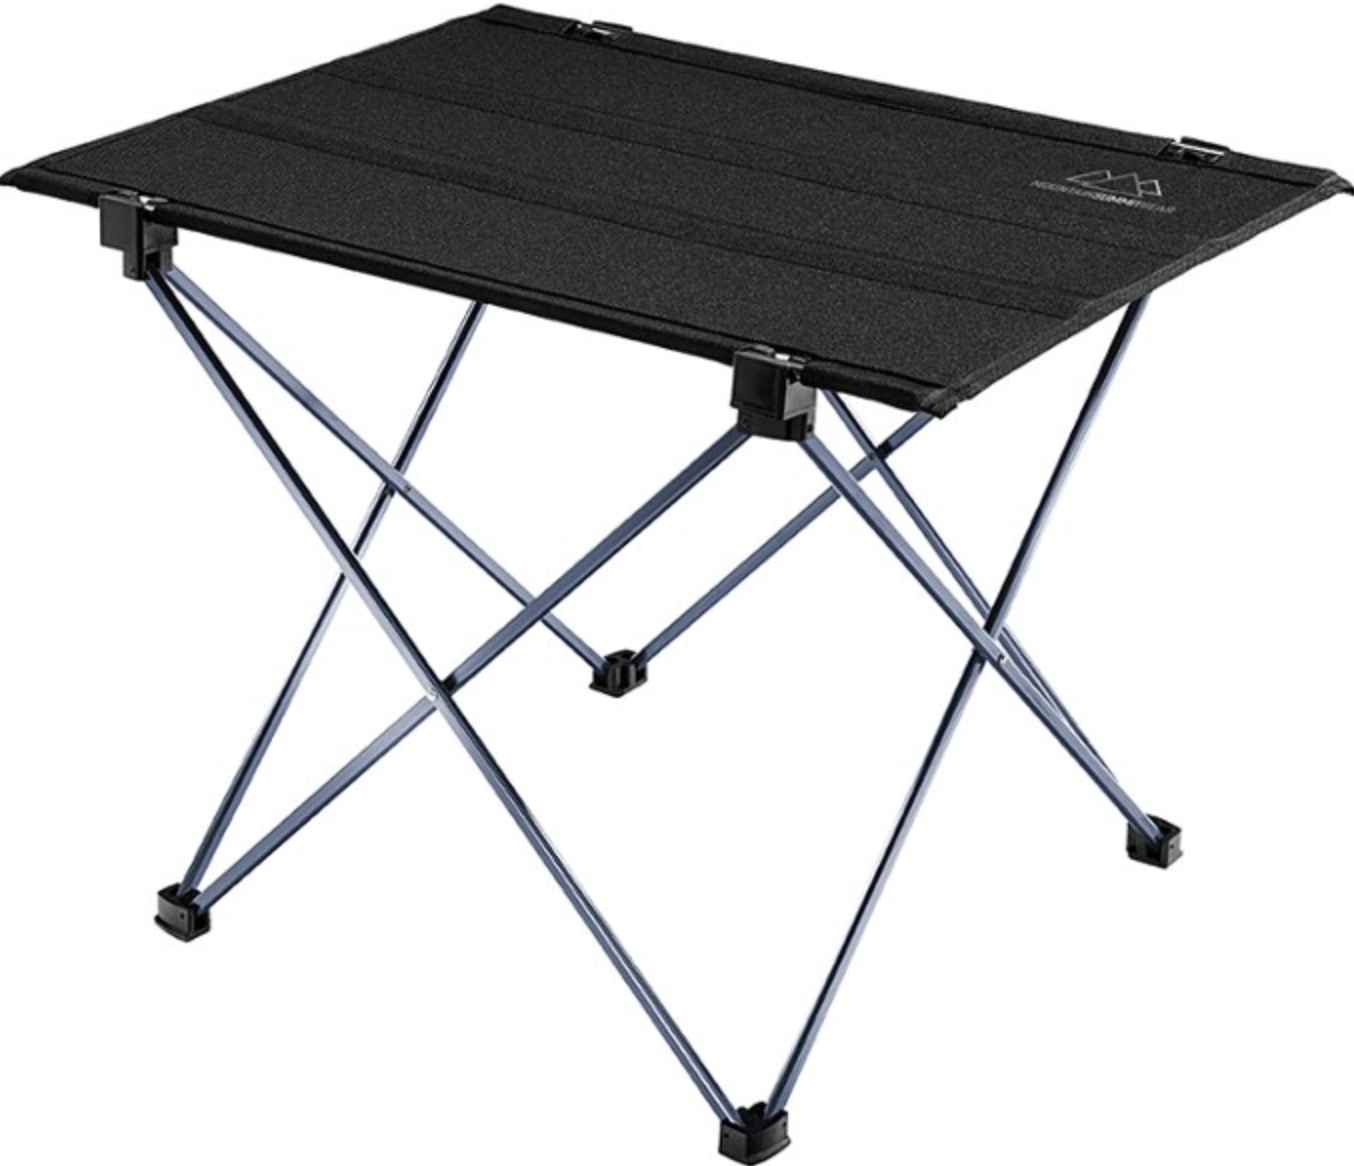 black table with camp chair–like folding legs and foldable top